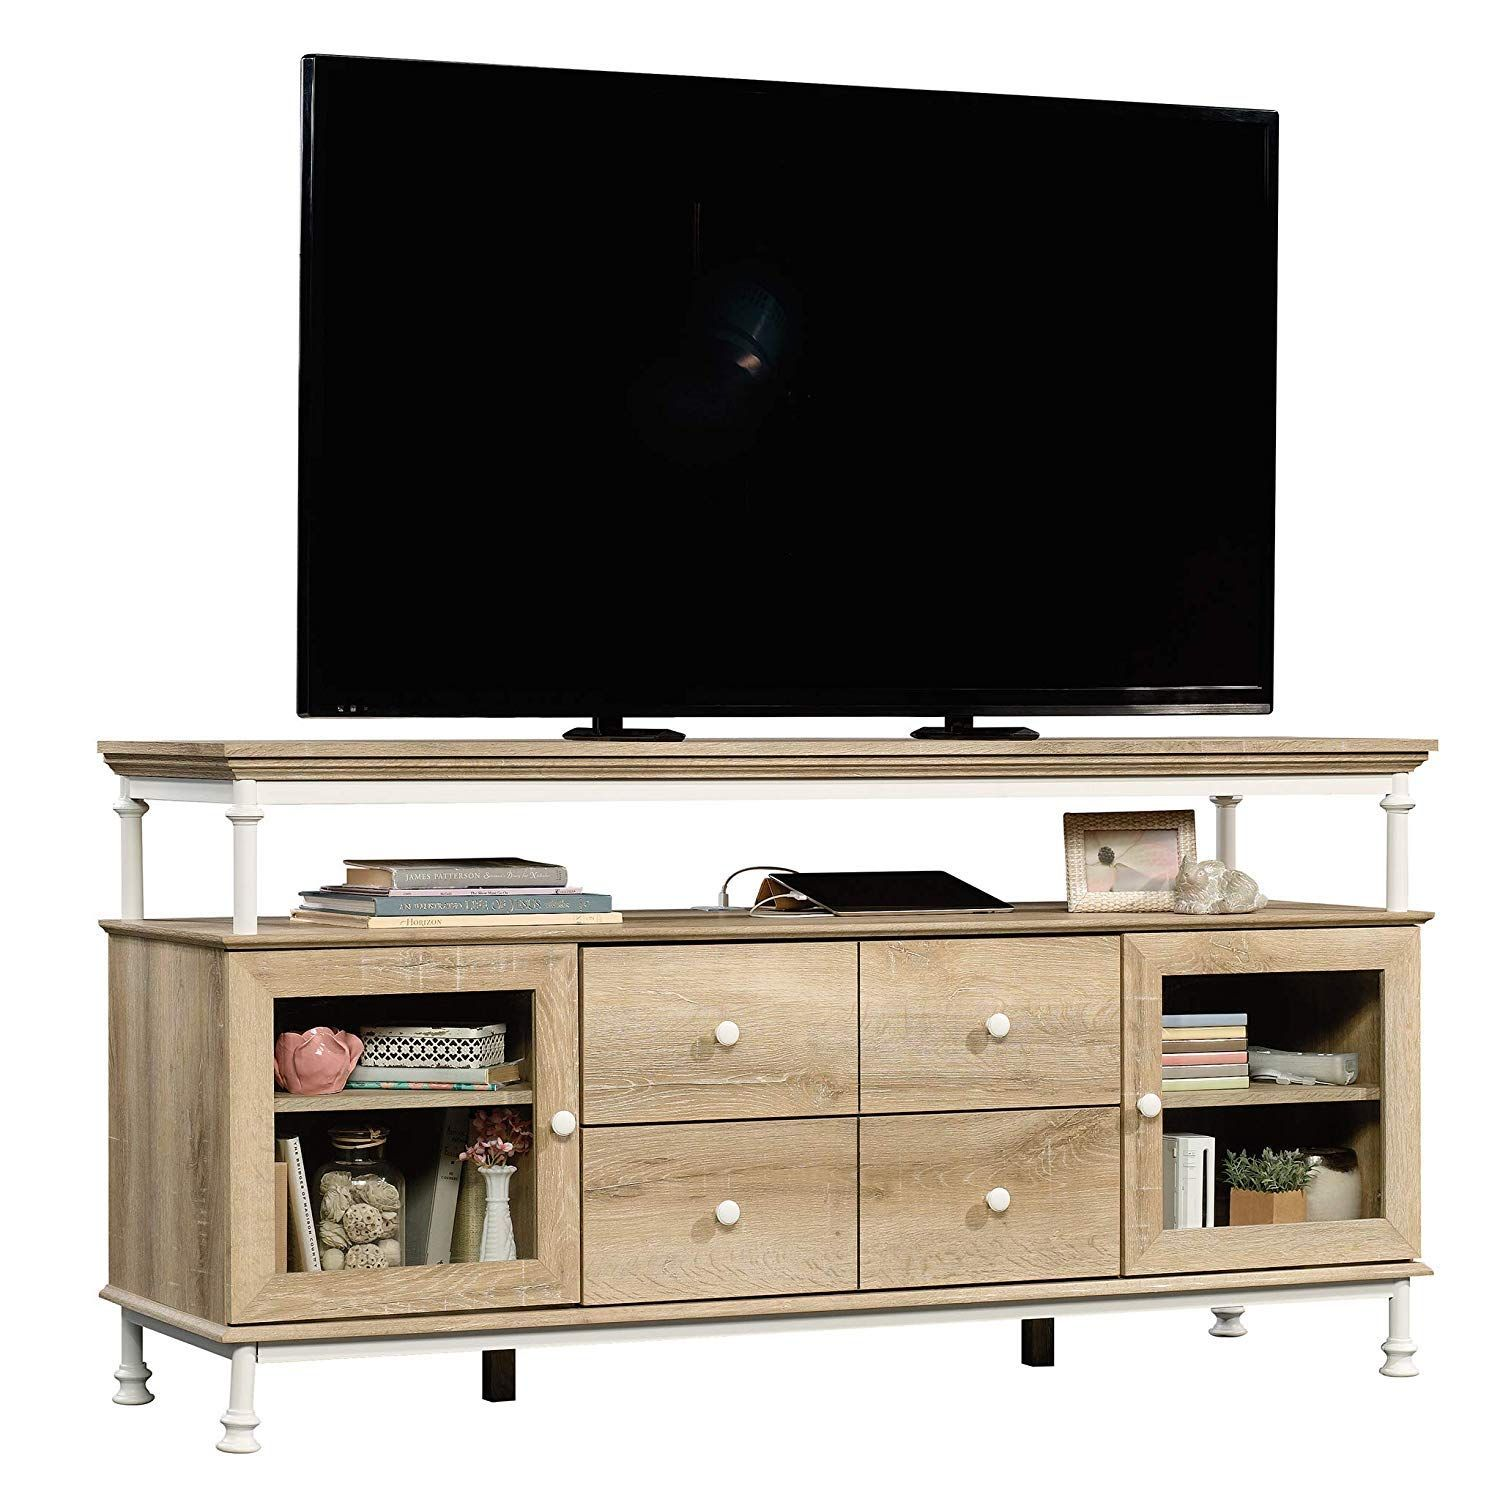 Farmhouse Tv Stands Rustic Tv Stands Farmhouse Tv Stand